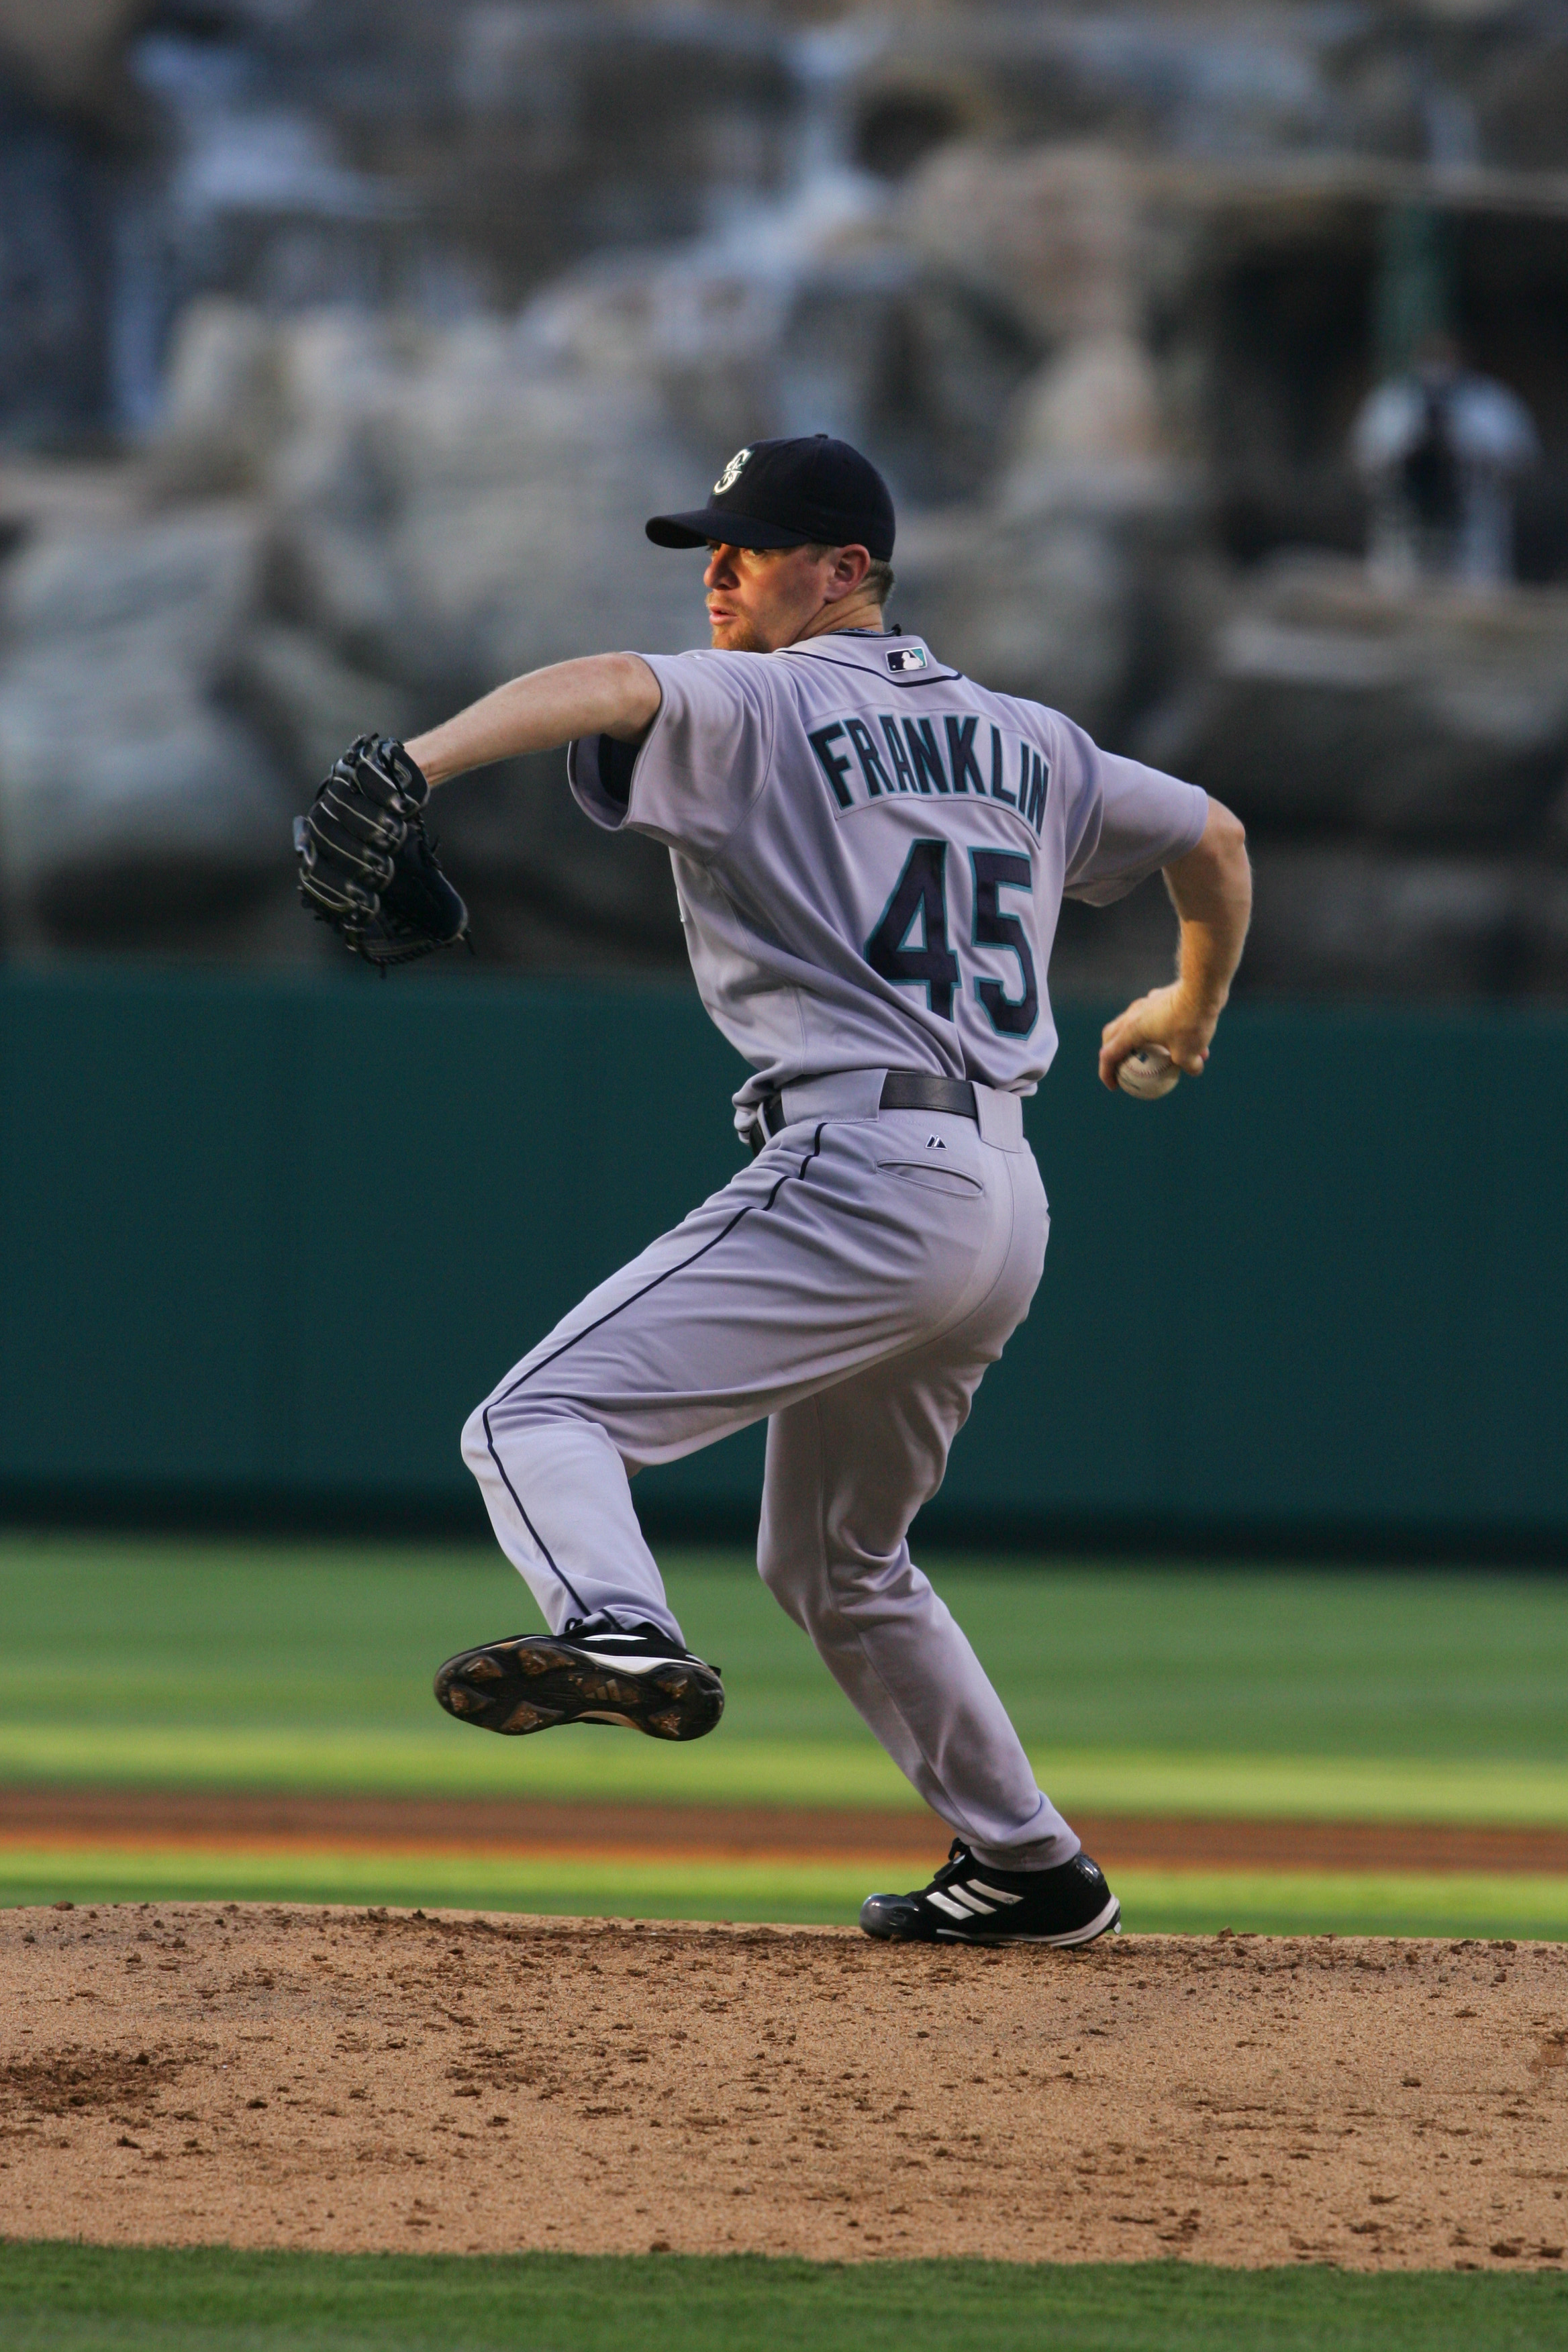 ANAHEIM, CA - JULY 9:  Ryan Franklin #45 of the Seattle Mariners pitches against the Los Angeles Angels of Anaheim on July 9, 2005 at Angel Stadium in Anaheim, California.  (Photo by Lisa Blumenfeld/Getty Images)